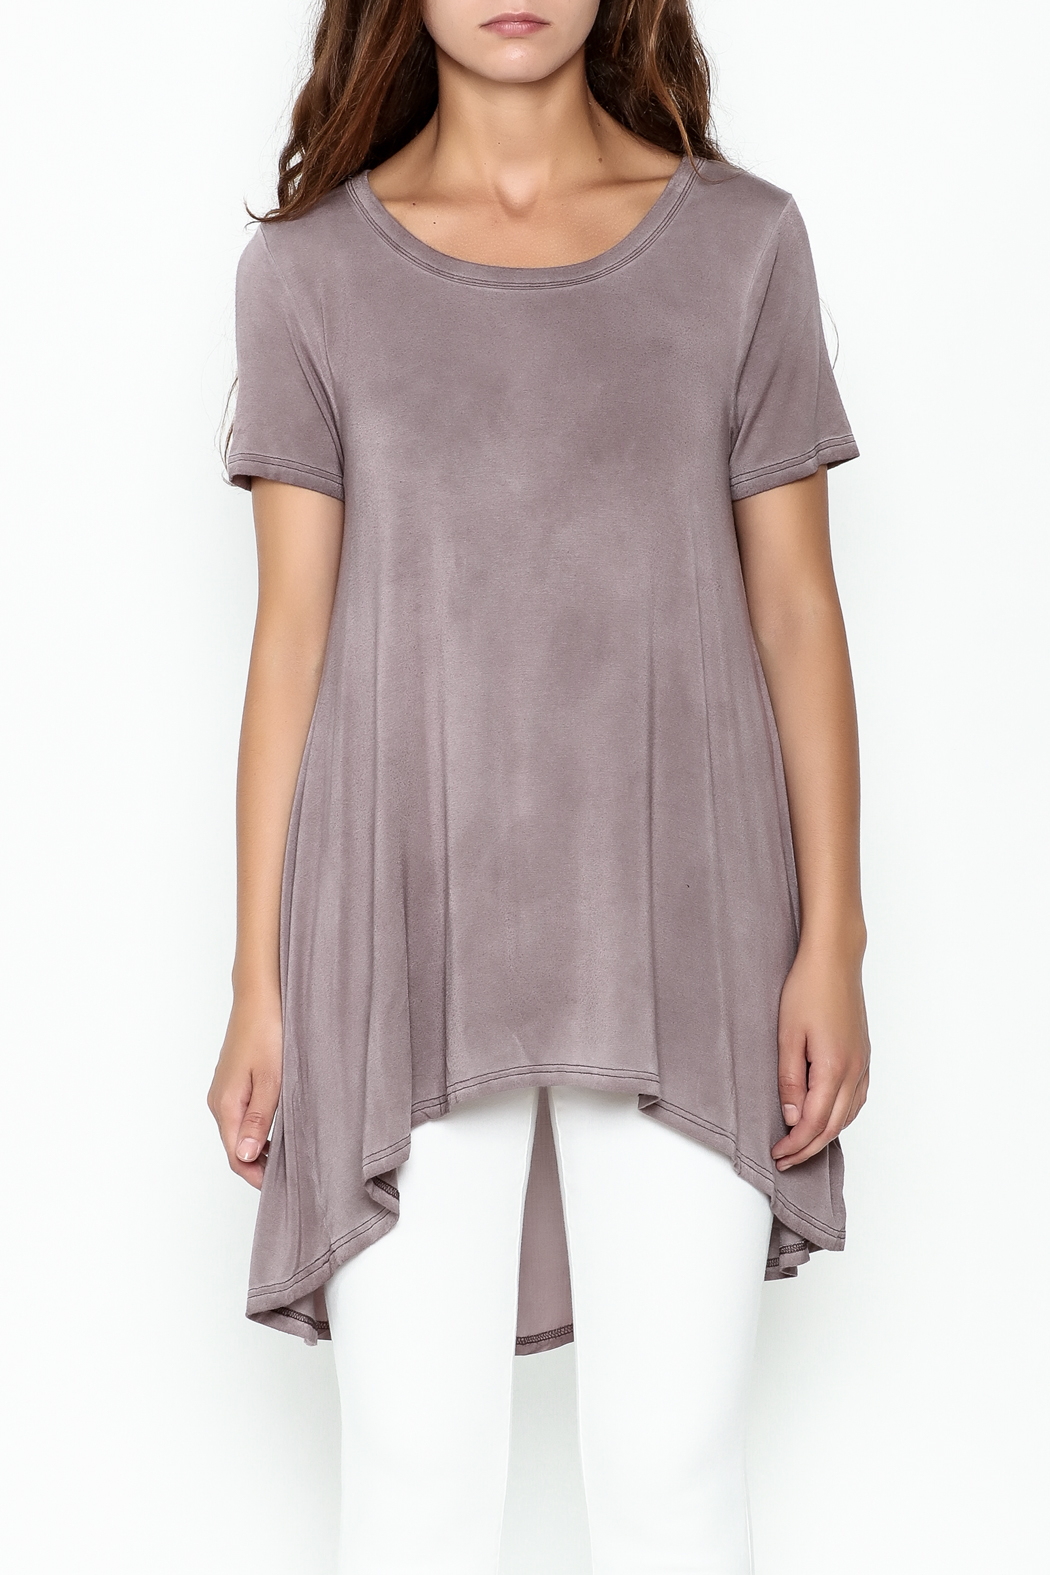 Hyku Tunic Length Top - Front Full Image